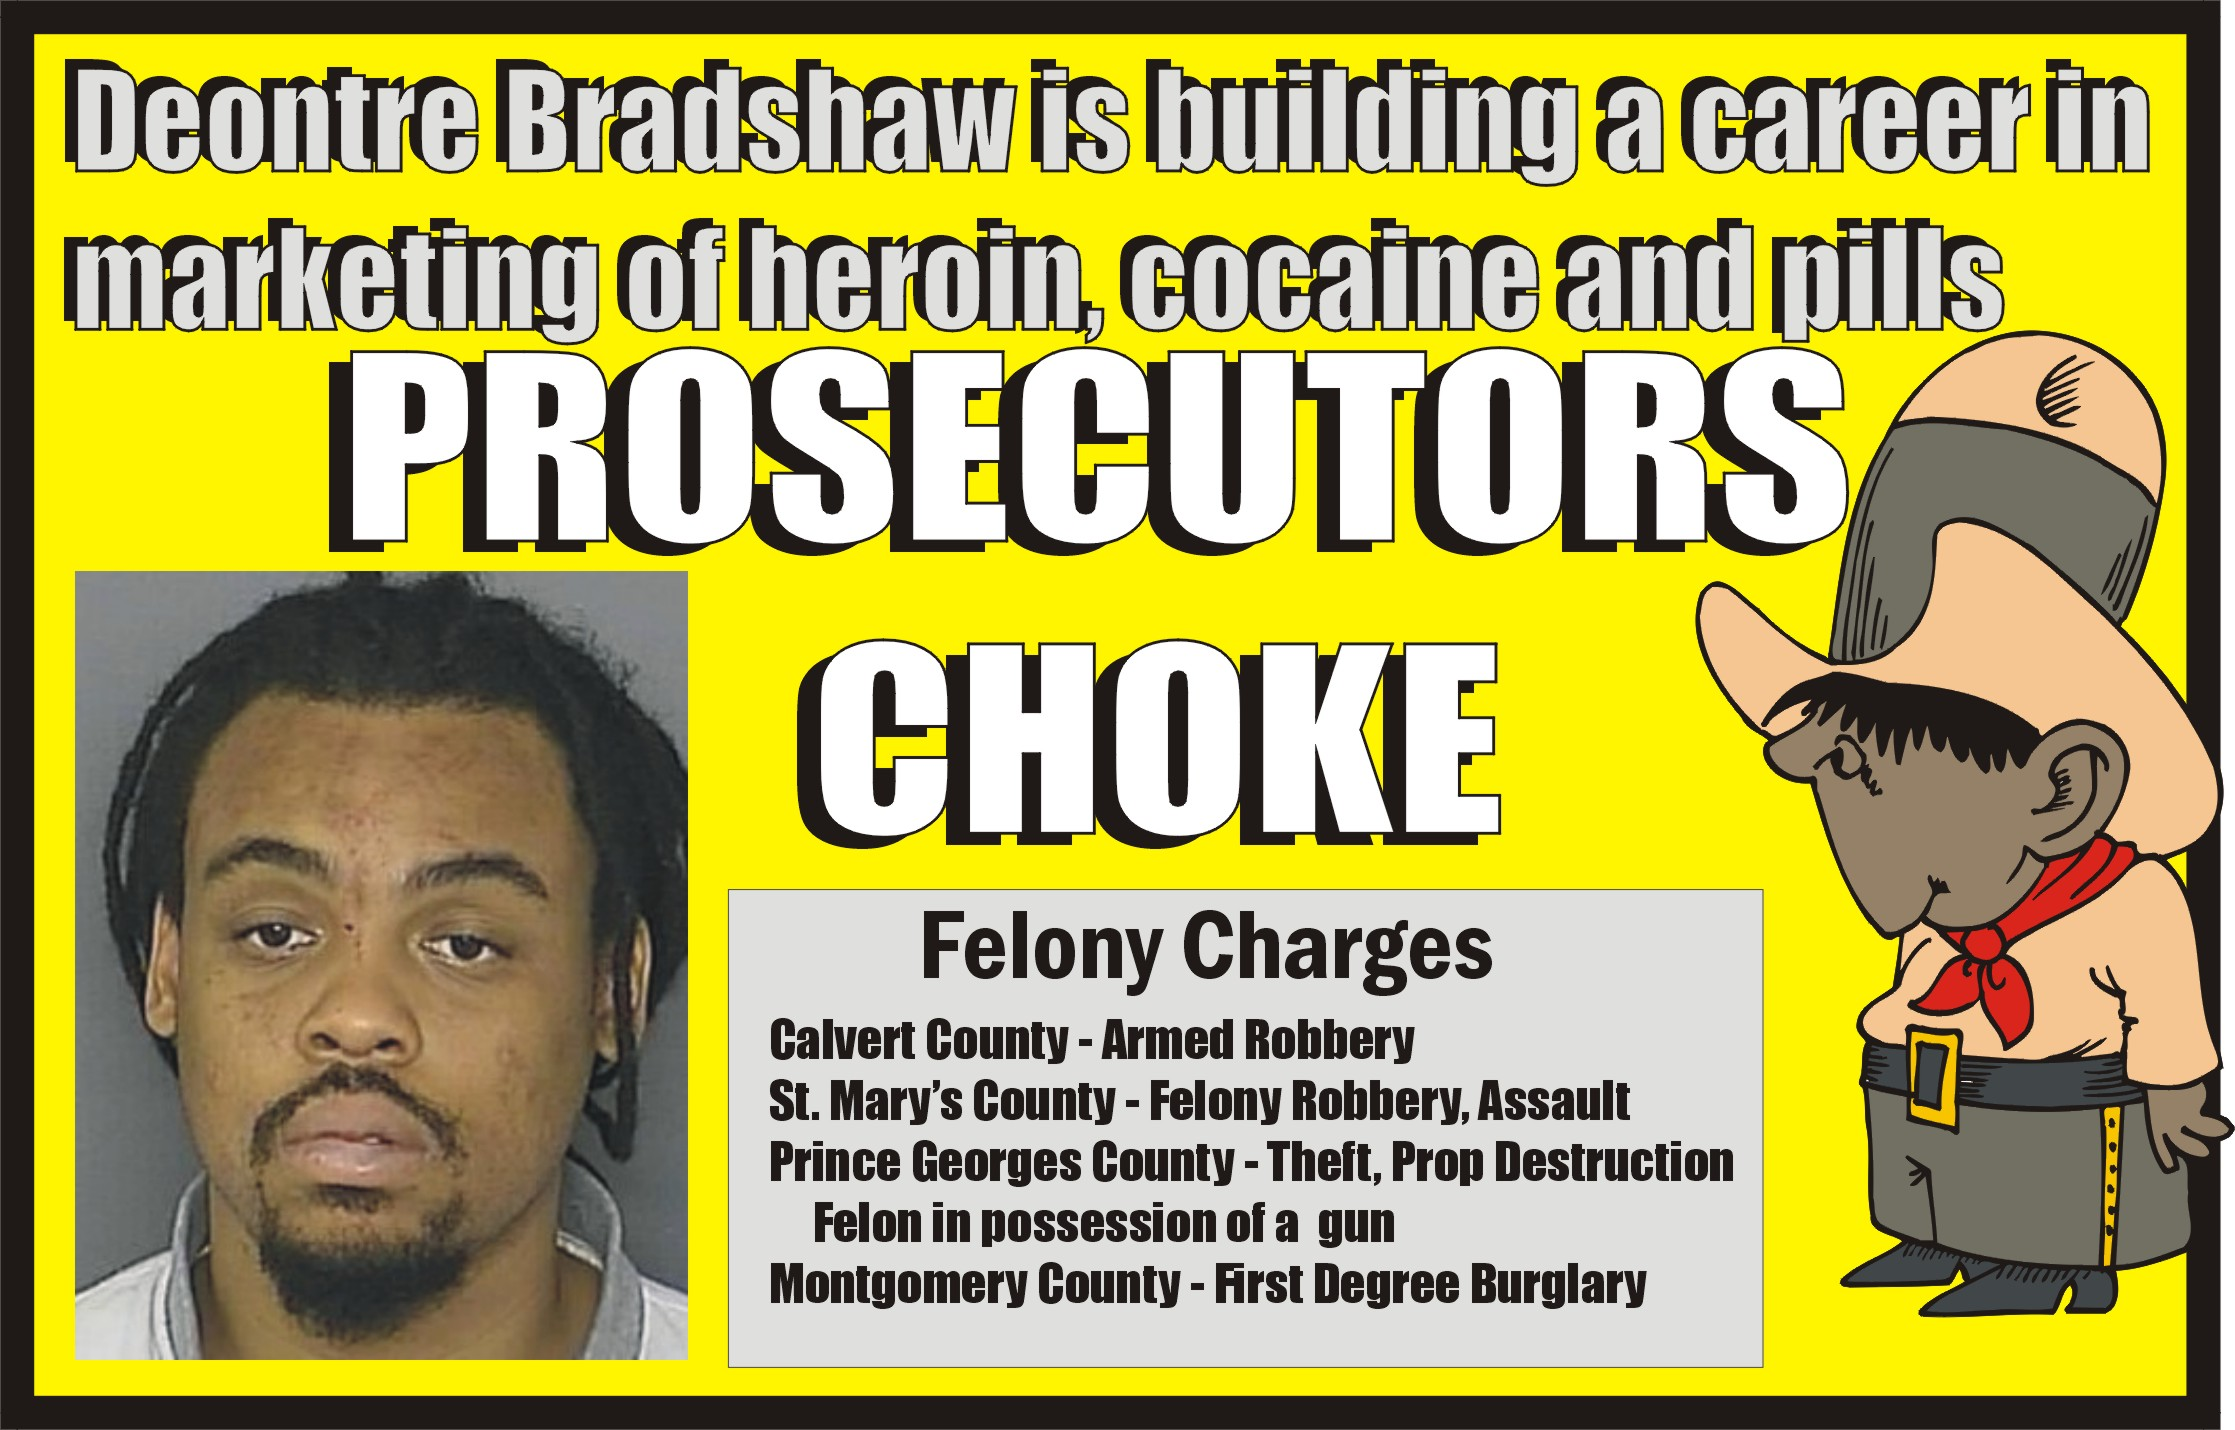 HEROIN HIGHWAY TO HELL: Ex-Con Deontre Dwayne Bradshaw caught with his mobile drug dispensary on wheels as he makes a fresh start in a new type of crime